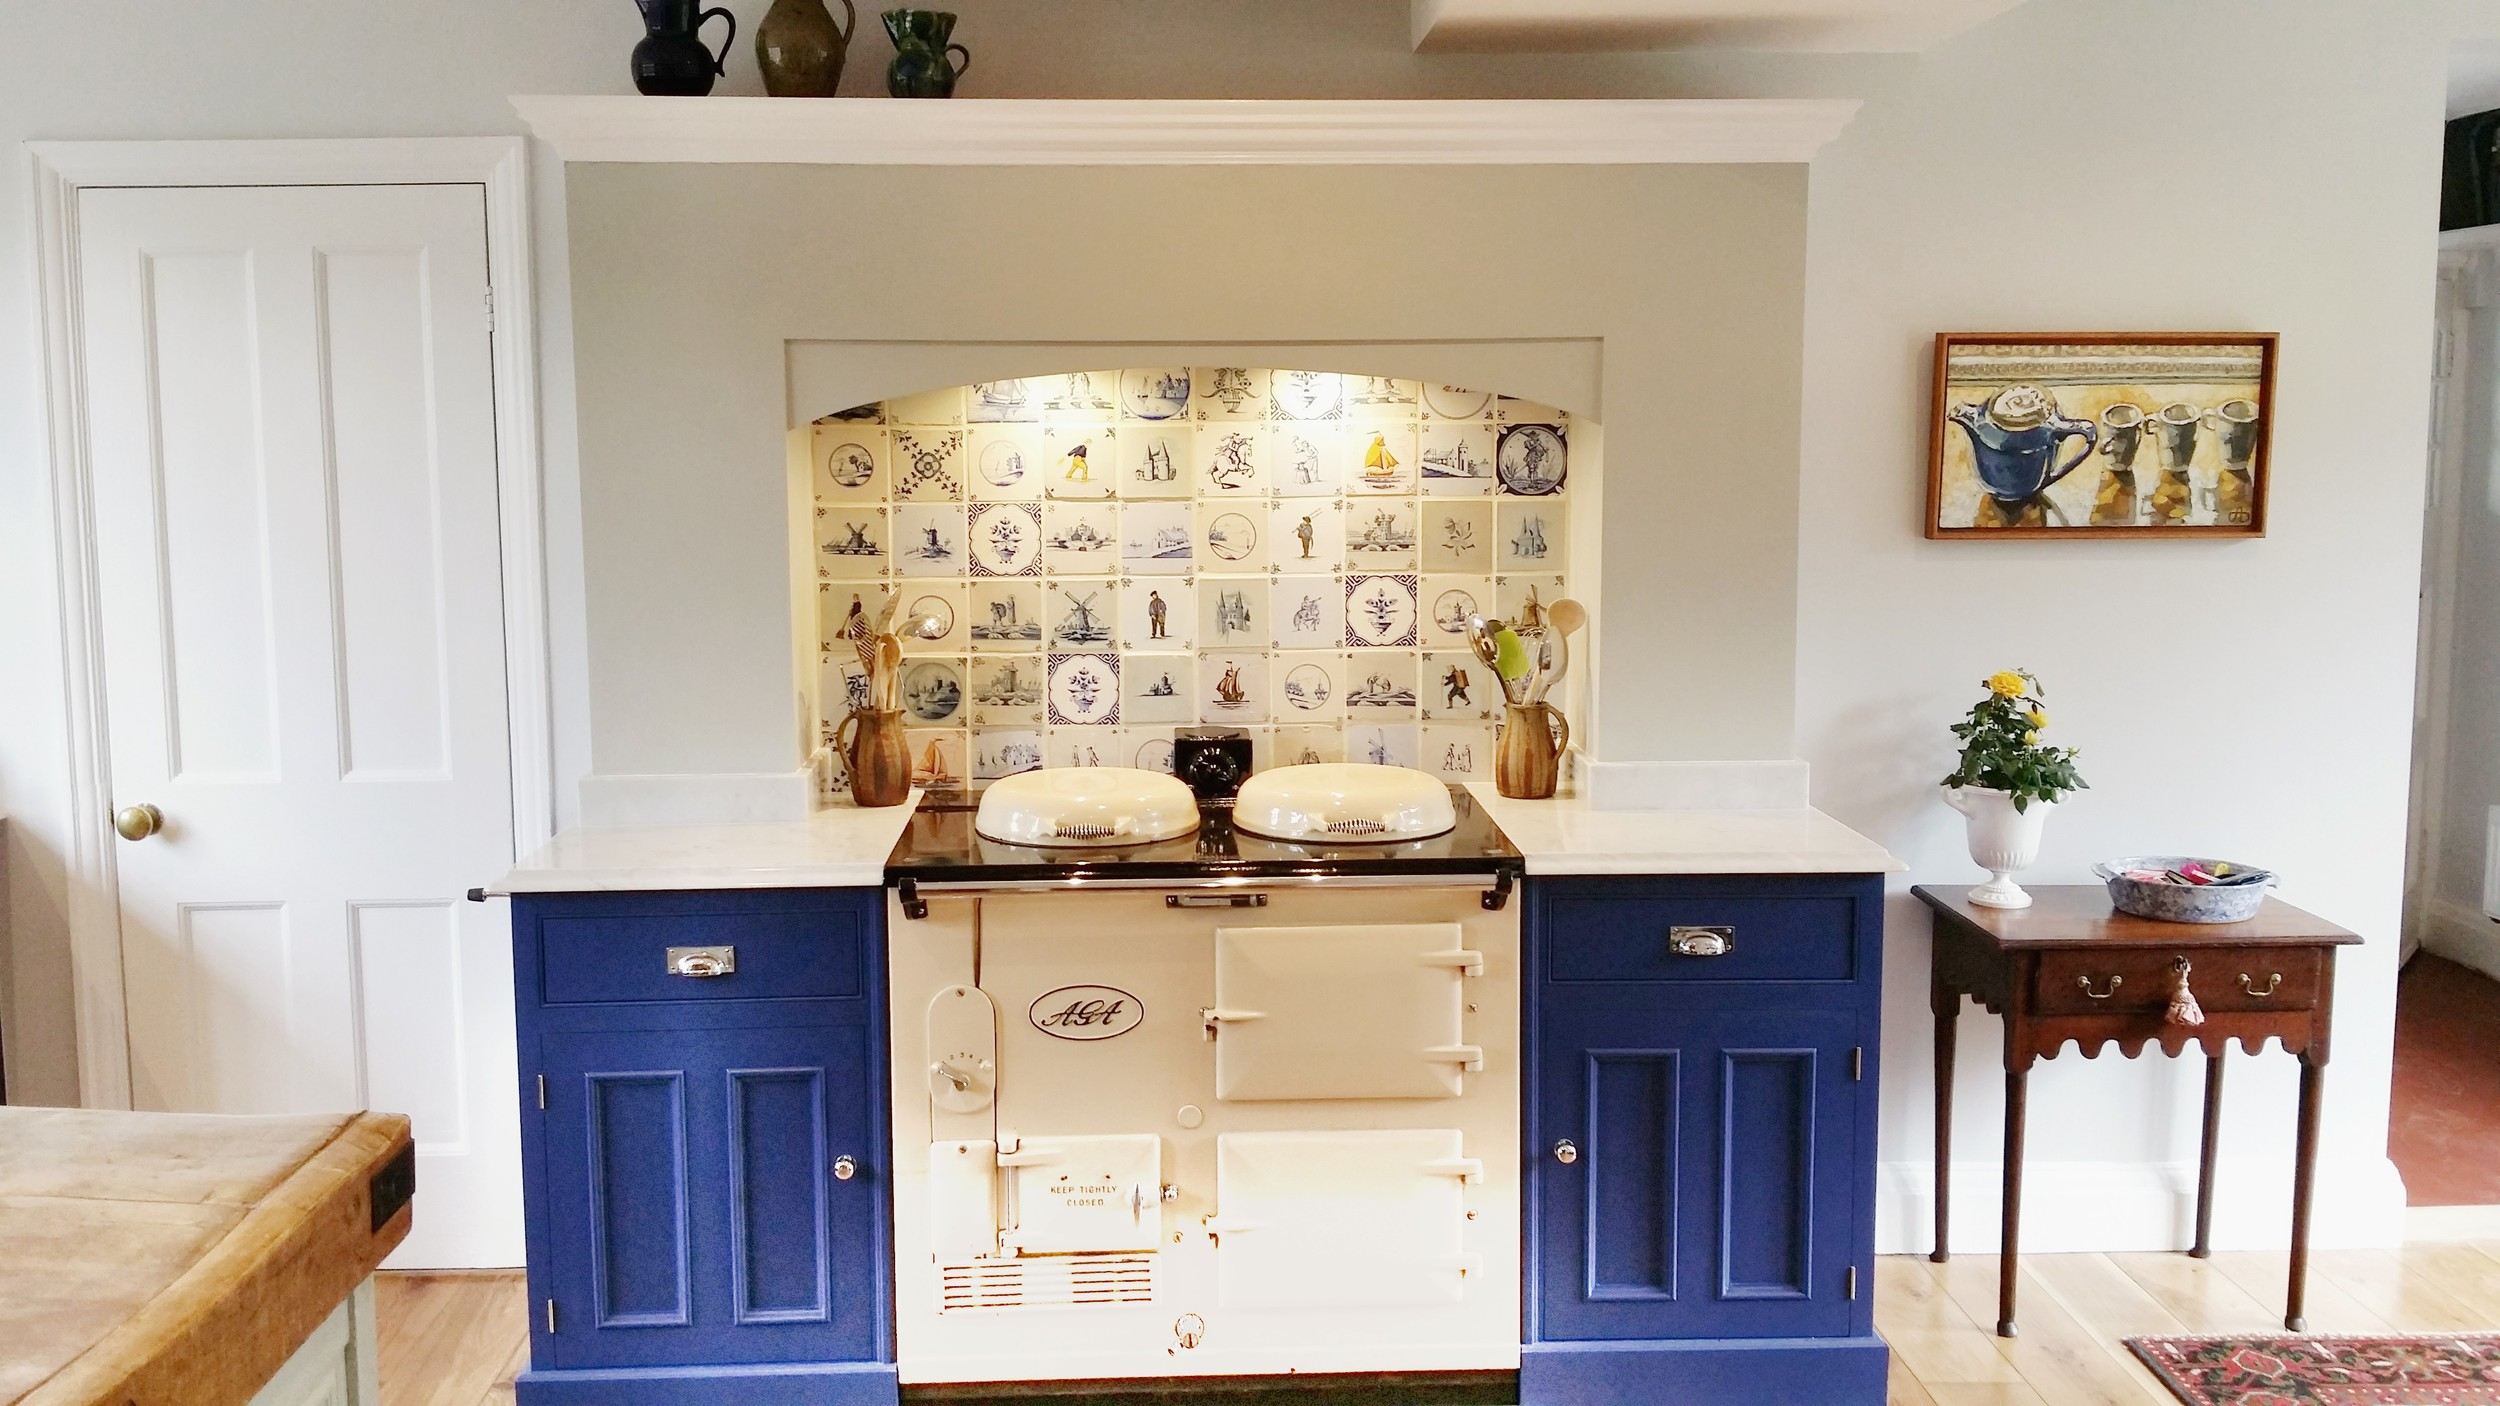 Beautiful handmade kitchen with Aga